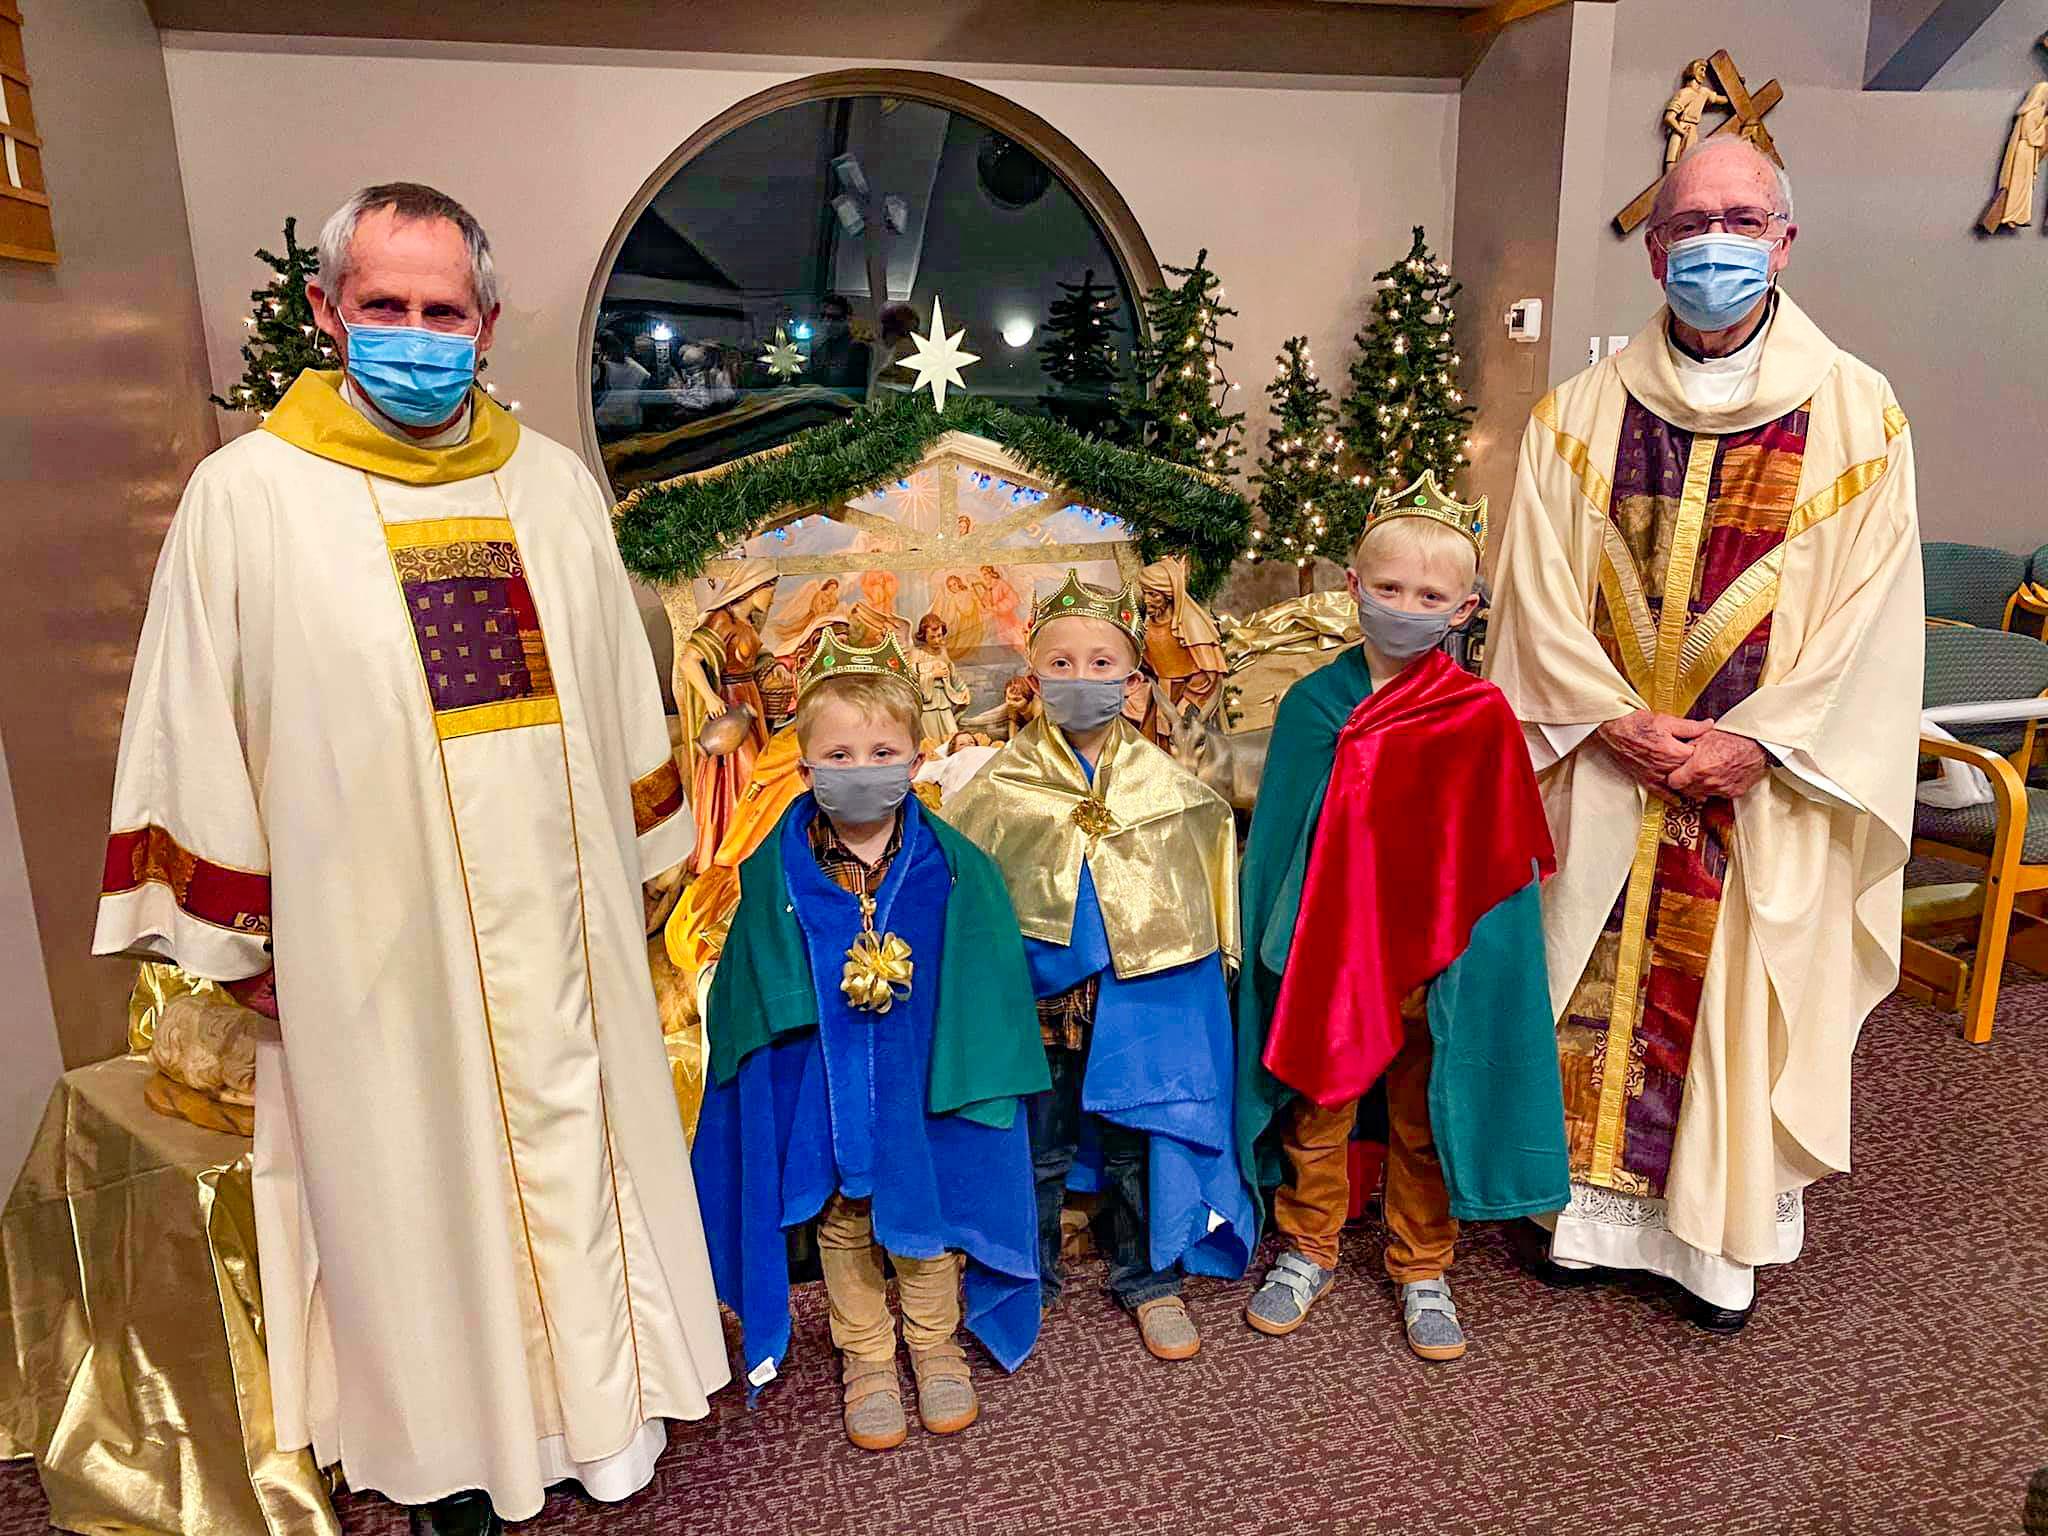 During the Epiphany Anticipatory Mass, Jan. 2 at St. Francis of Assisi Parish's St. Nicholas Church in Santa Claus, Liam, Parker and Preston Ward portrayed the three wise men who traveled from the east to present gifts to Jesus, the newborn King of the Jews. Shown with them are Deacon Jim Woebkenberg, left, and Father Donald Ackerman, who celebrated the Mass. Submitted photo